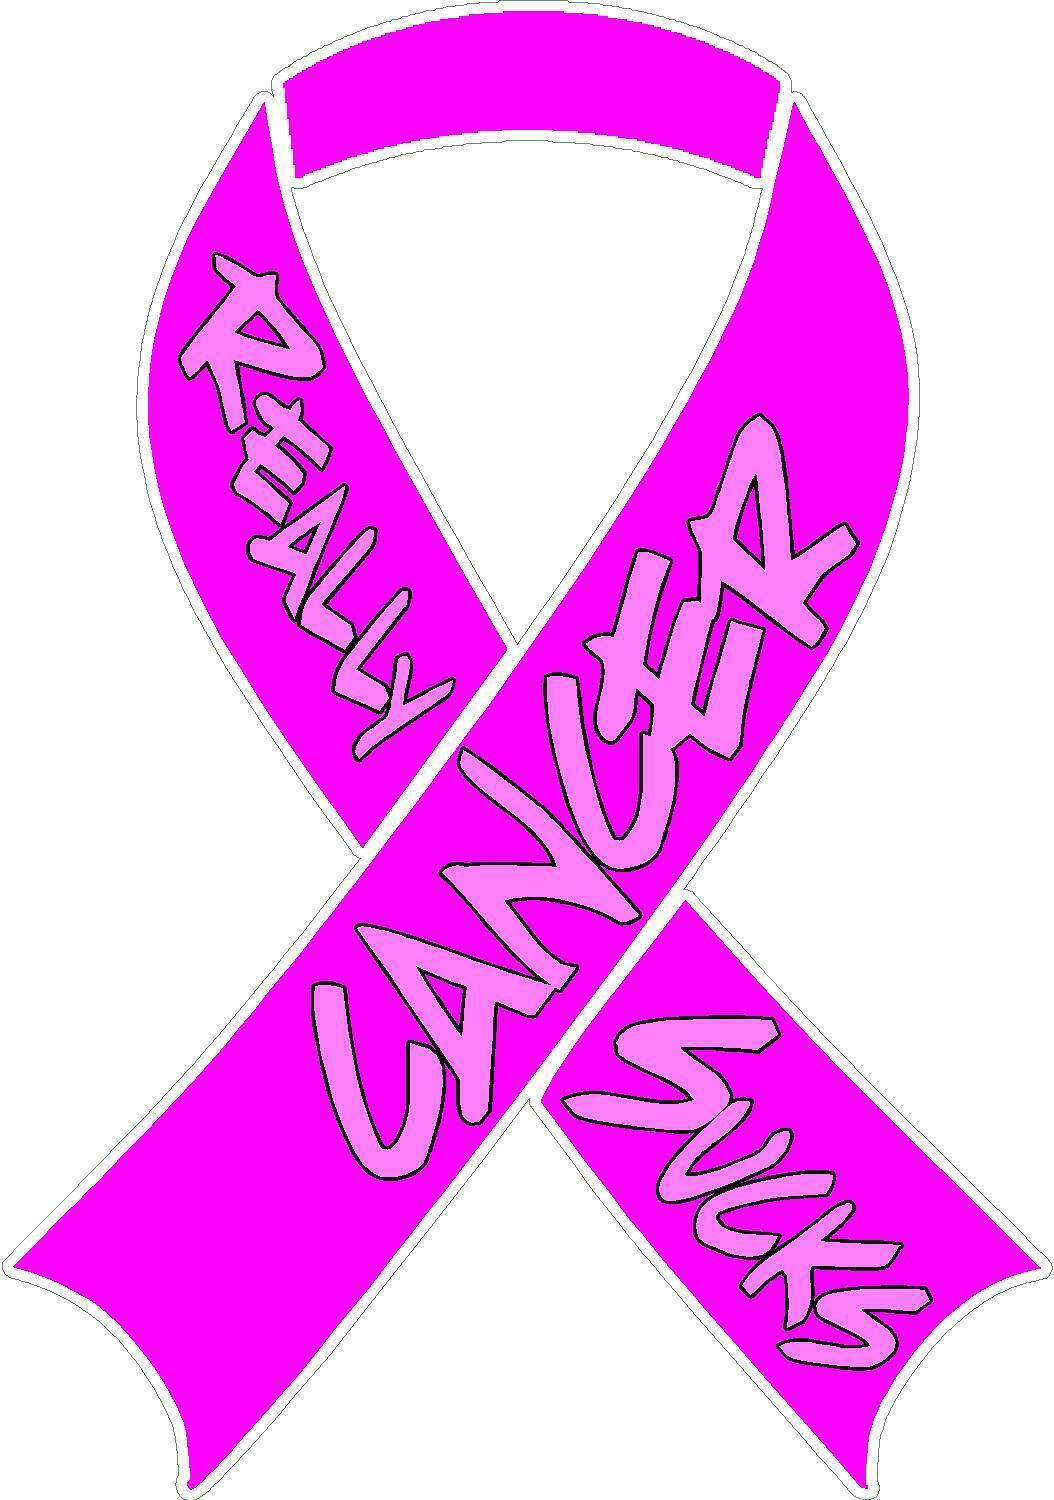 Primary image for CANCER REALLY SUCKS PINK RIBBON VINYL DECAL WINDOW STICKER FREE SHIPPING